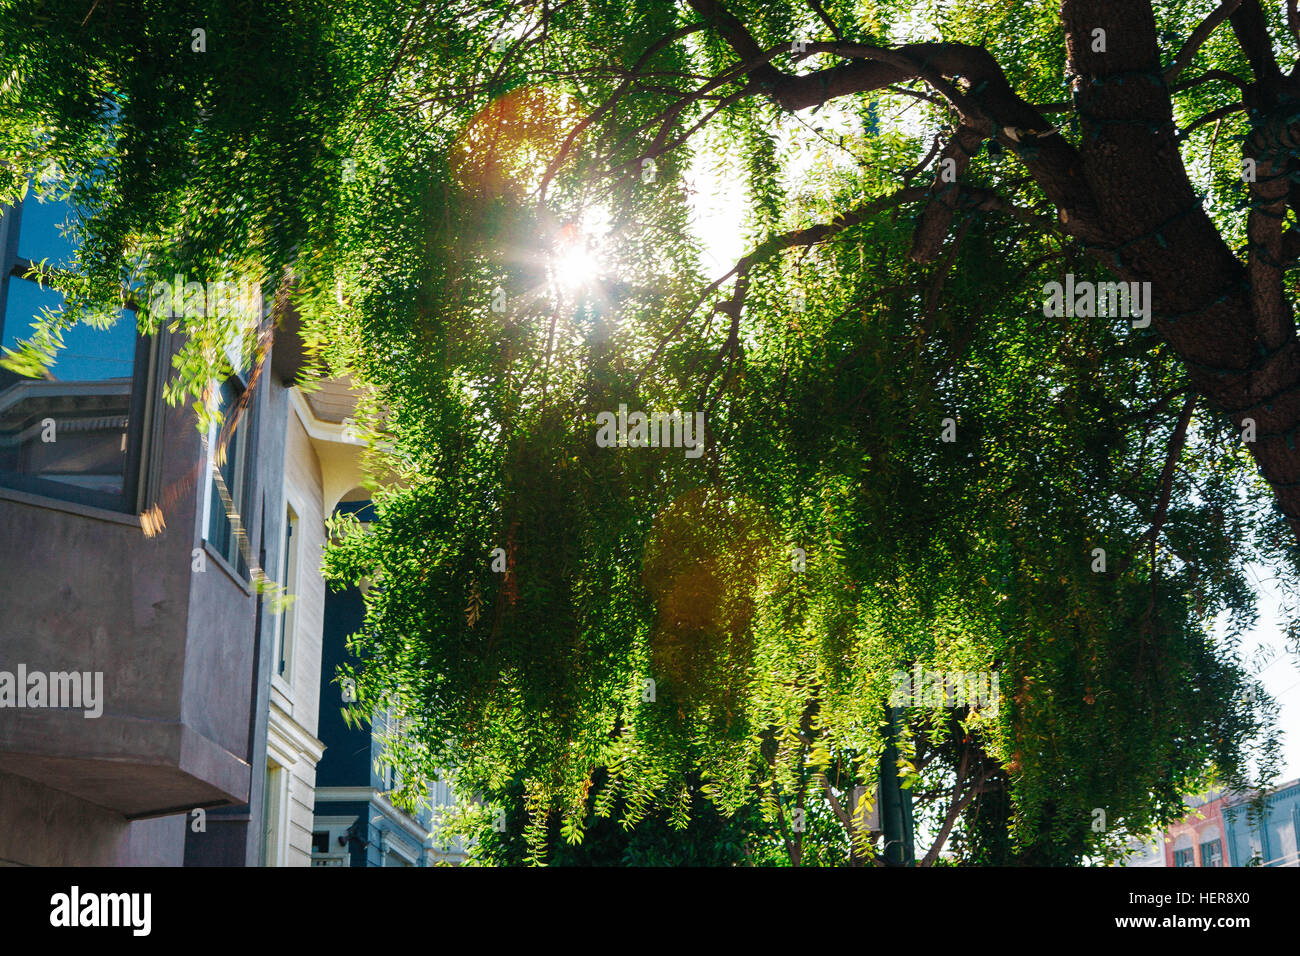 The sun shines through trees, house facades, - Stock Image